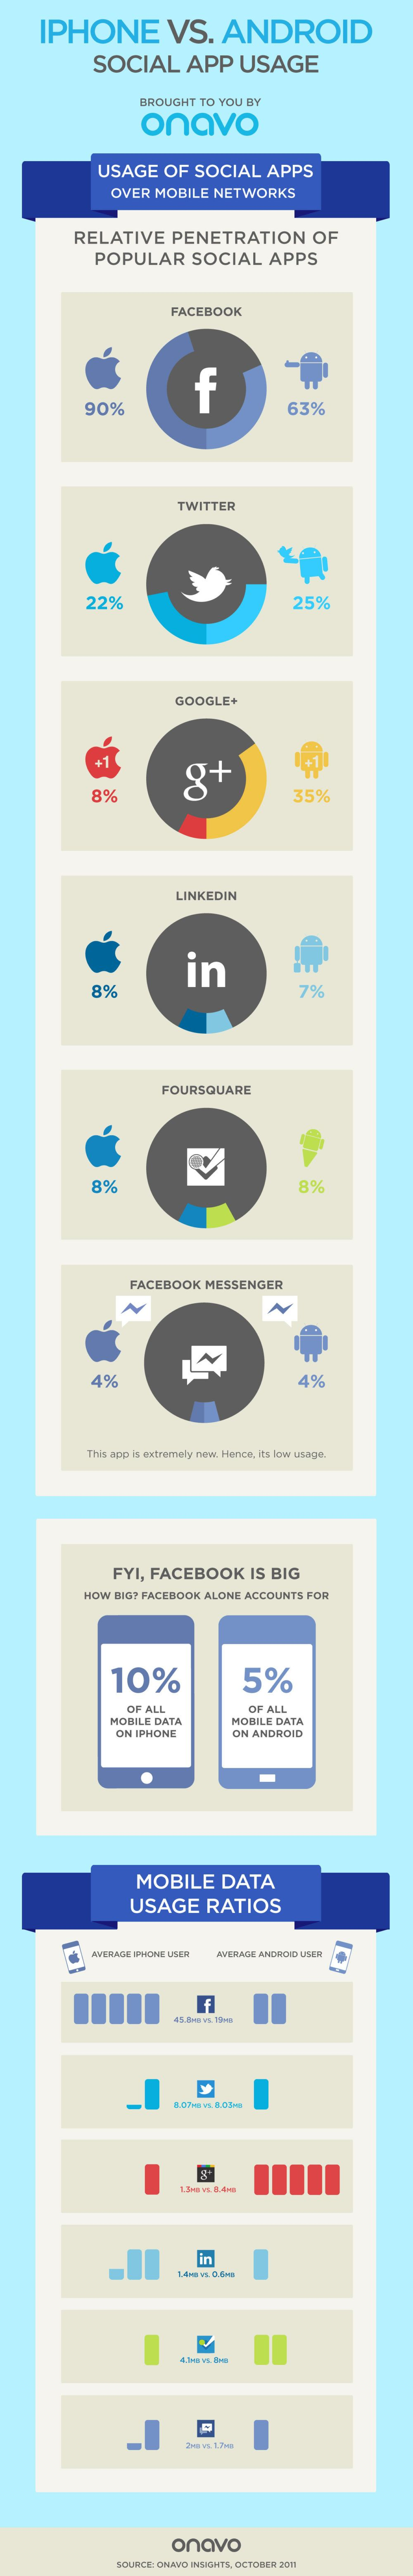 Social app usage - iPhone vs. Android Infographic